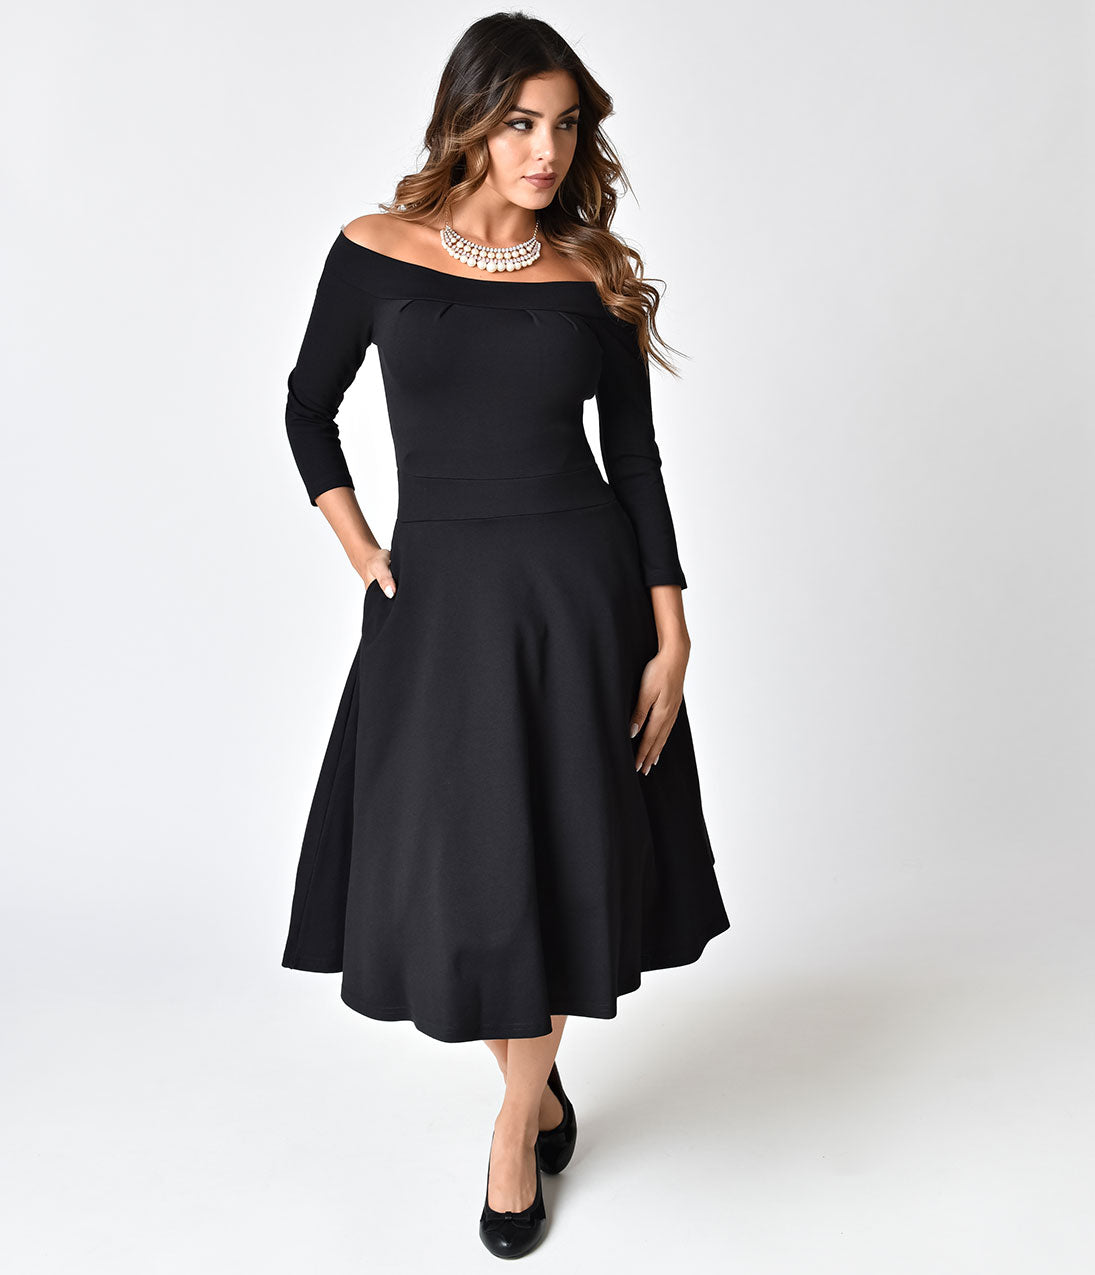 Bettie Page Black Off Shoulder Knit Sleeved Lucy Swing Dress ...